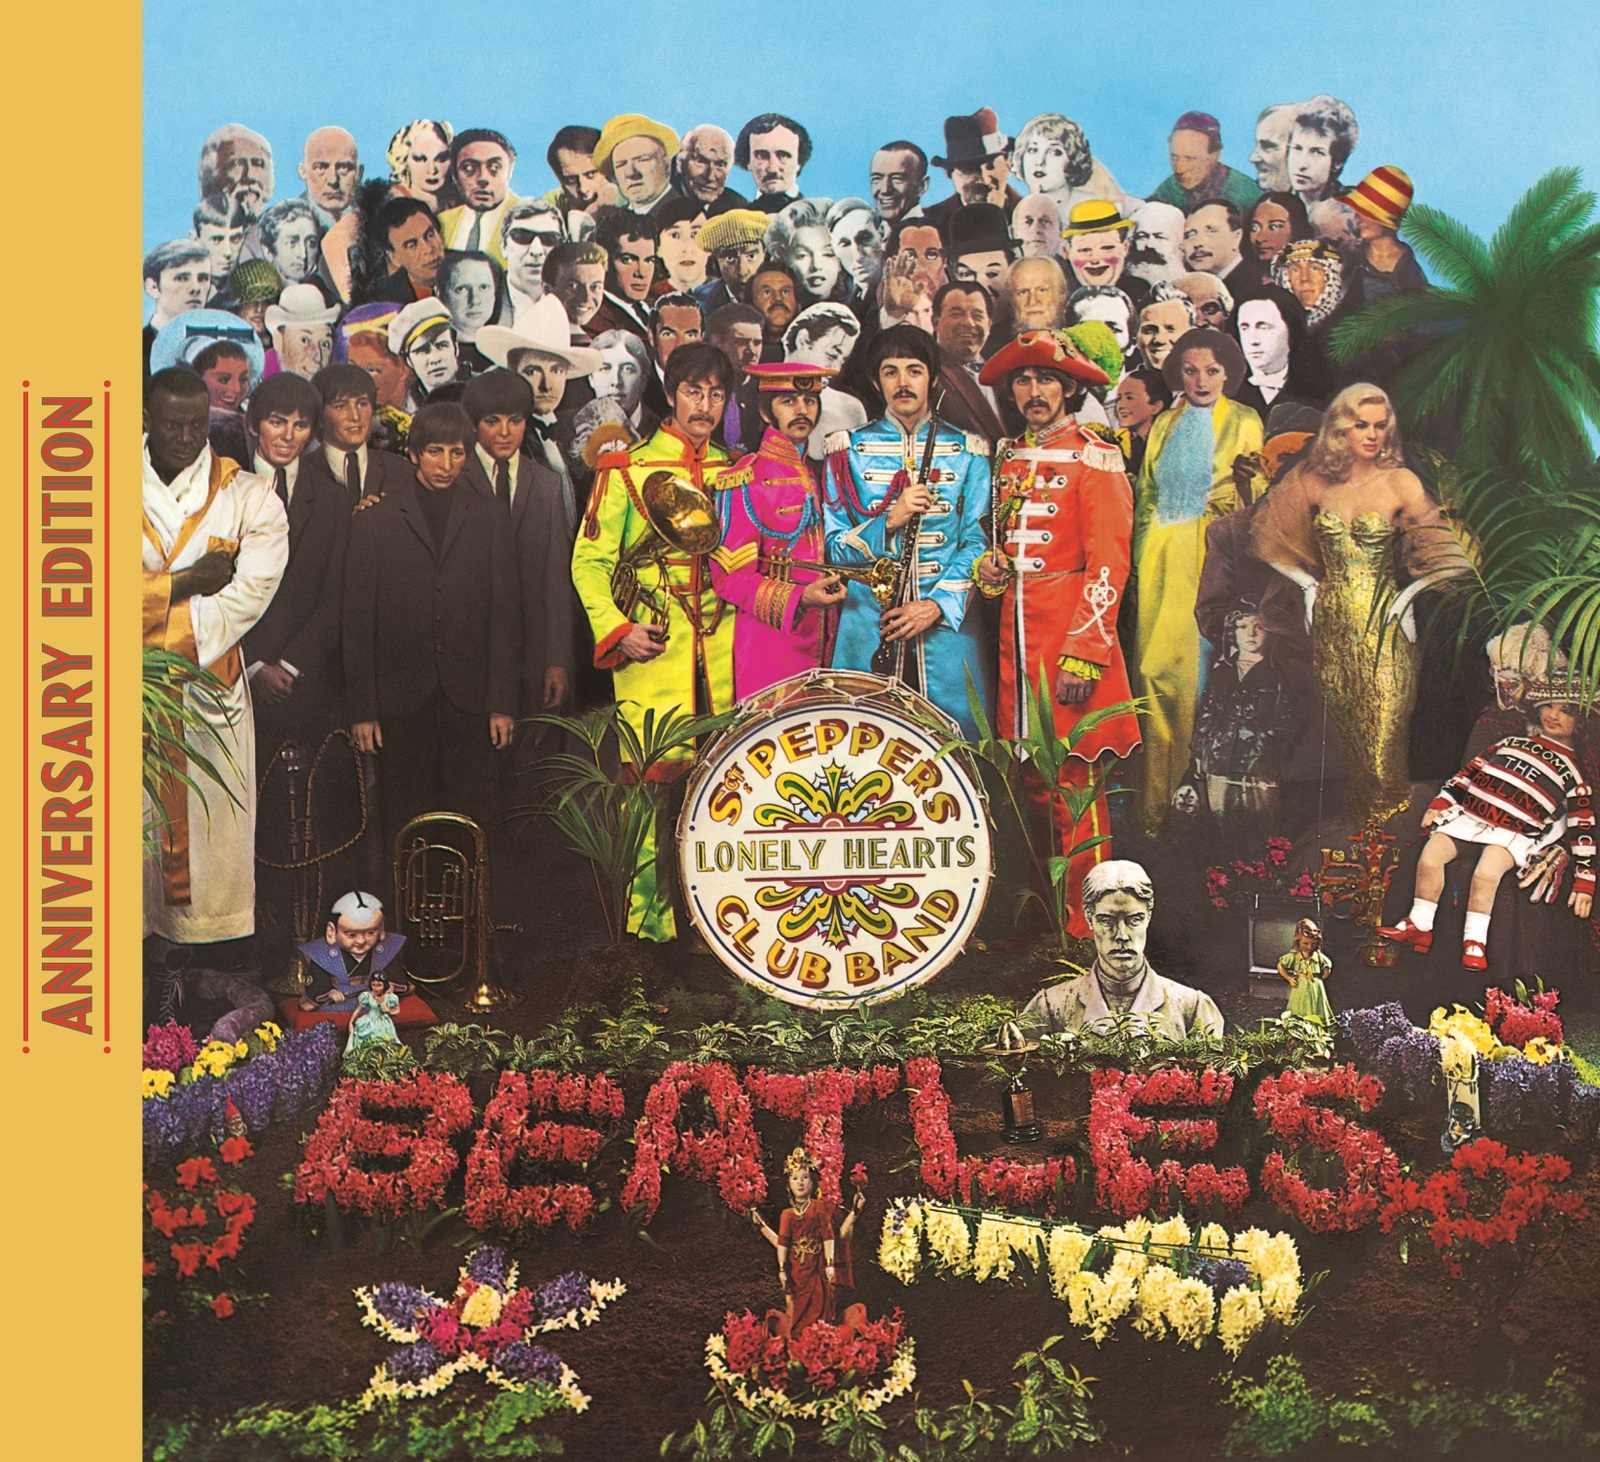 Sgt. Pepper's Lonely Hearts Club Band by The Beatles image